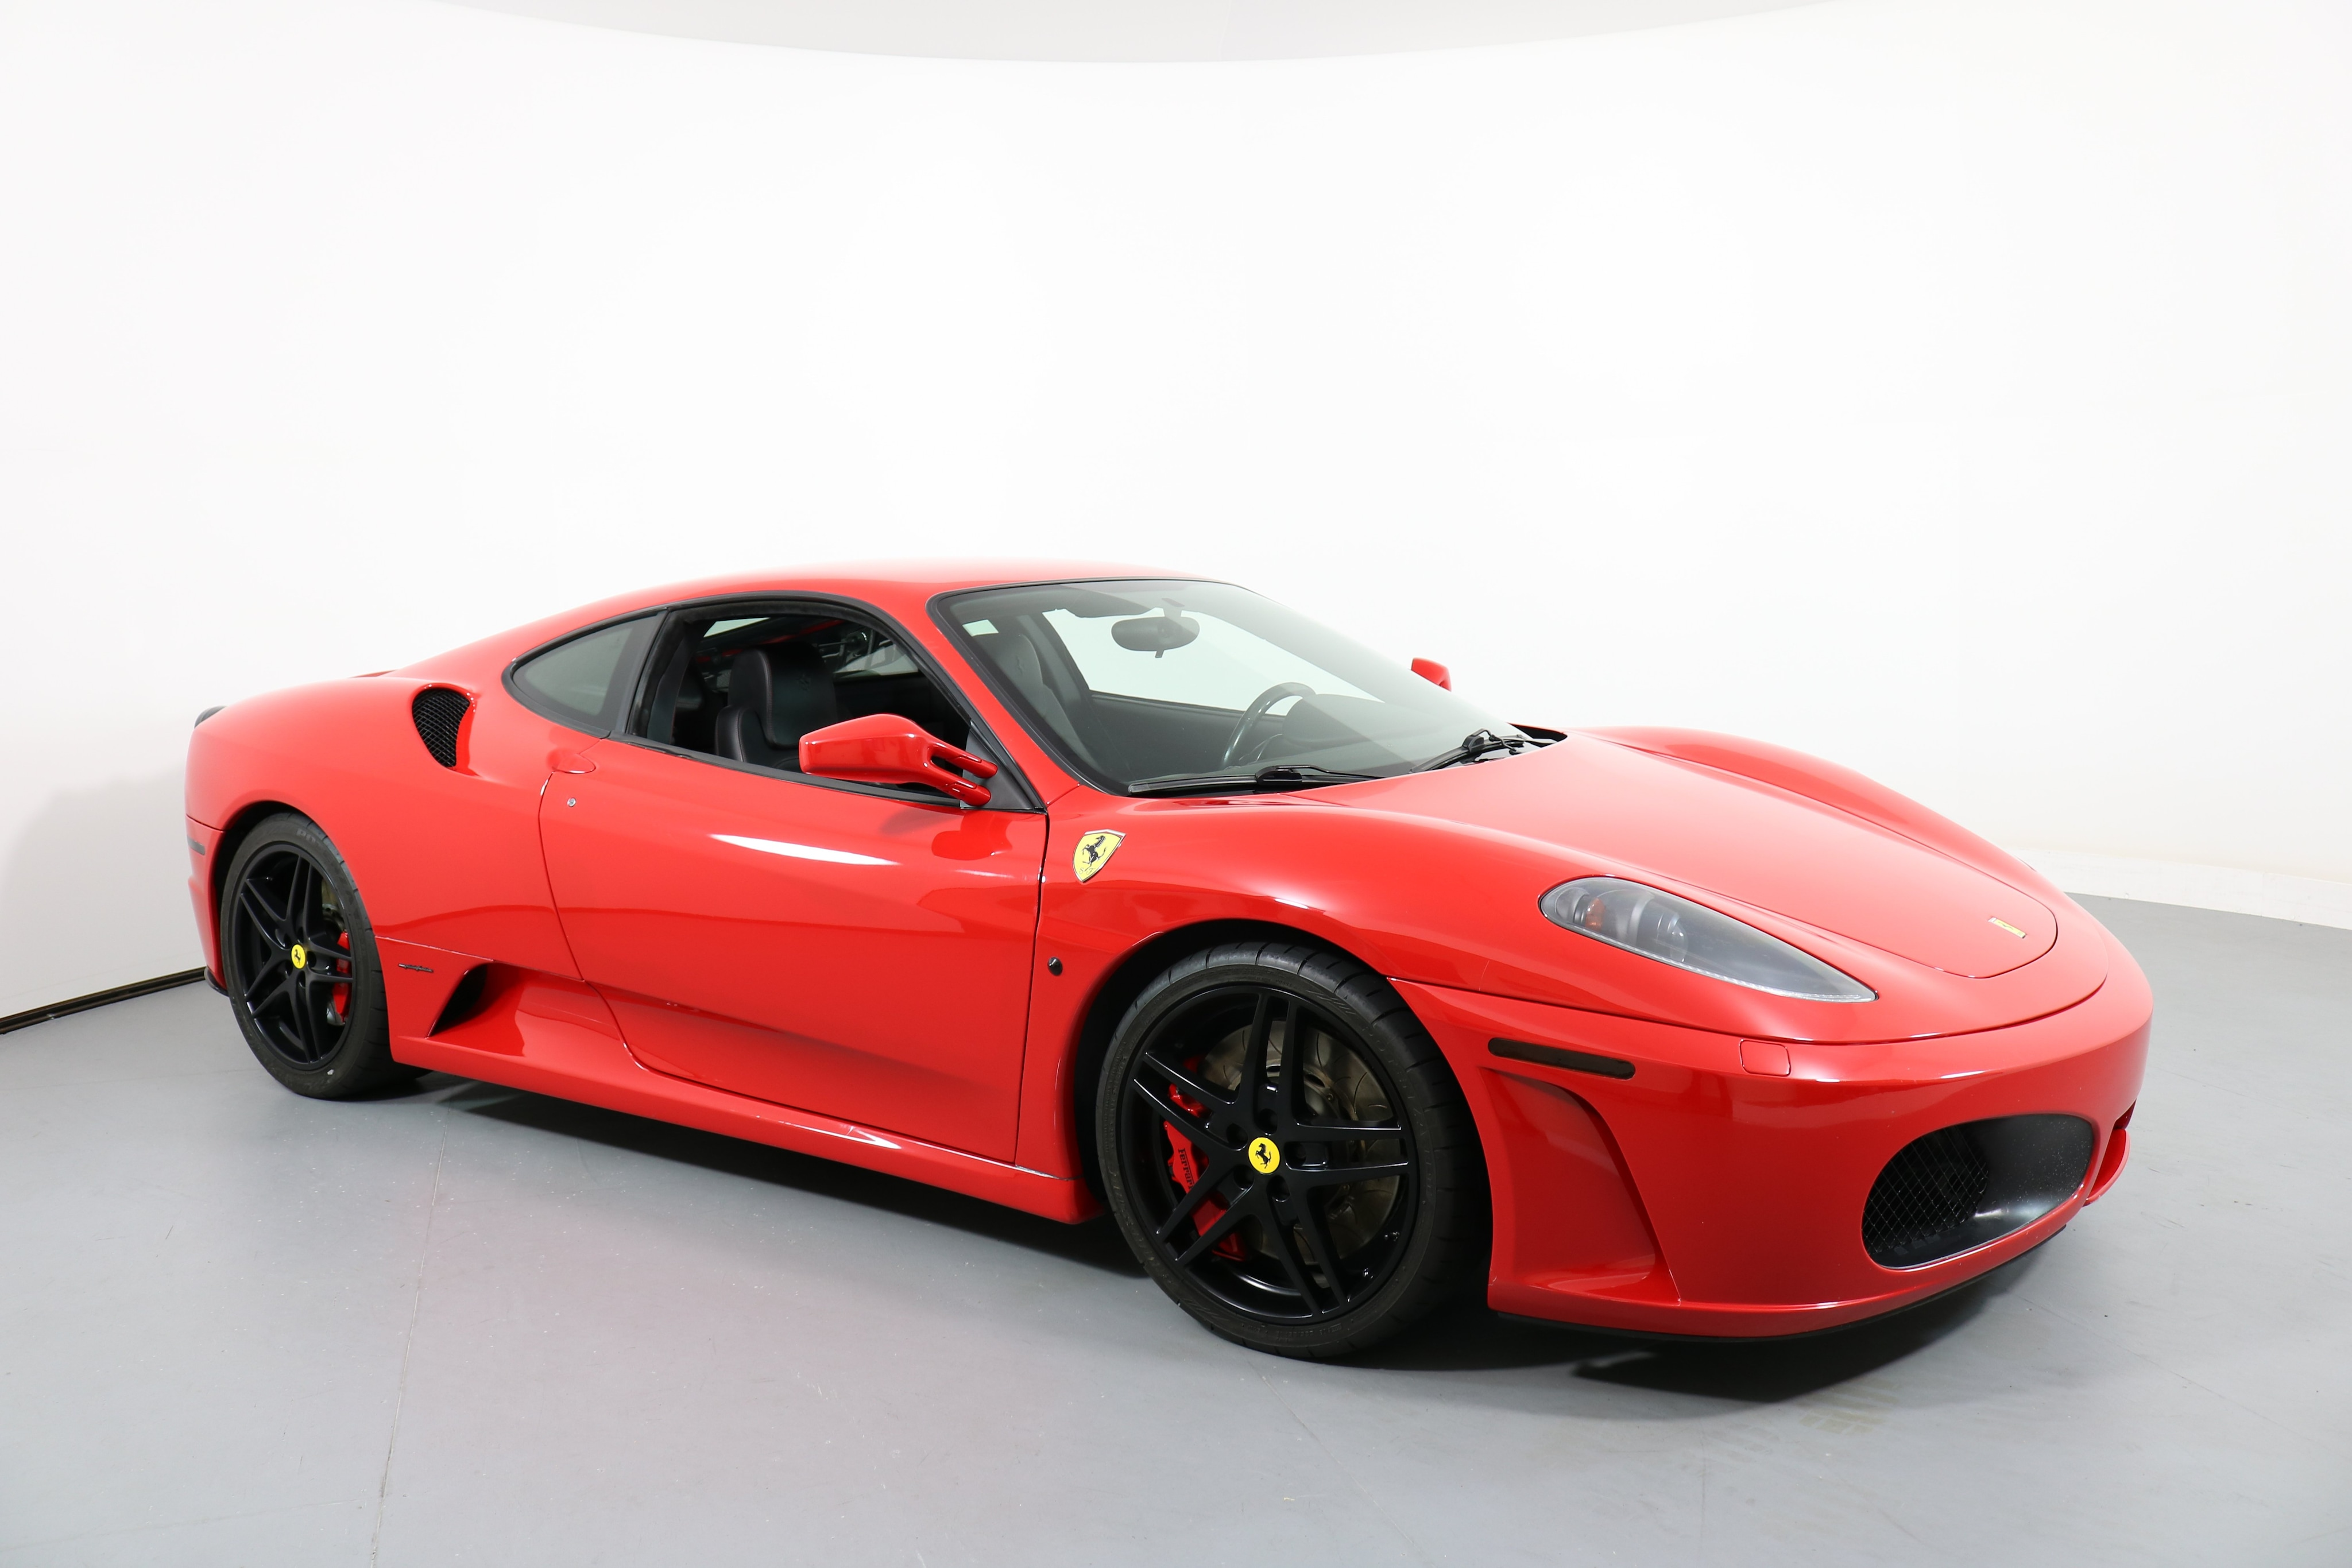 Pre Owned 2005 Ferrari F430 2dr Cpe Berlinetta For Sale In San Francisco Ca Zffew58a450143962 Serving The Bay Area Mill Valley San Rafael And Redwood City